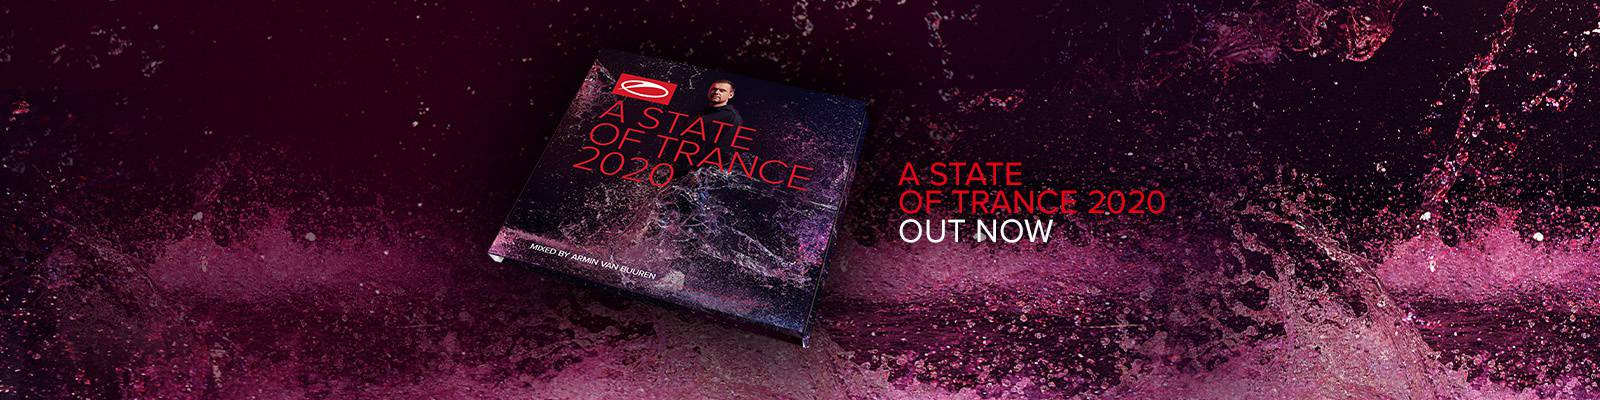 Out Now: A State Of Trance 2020 (Mixed by Armin van Buuren)